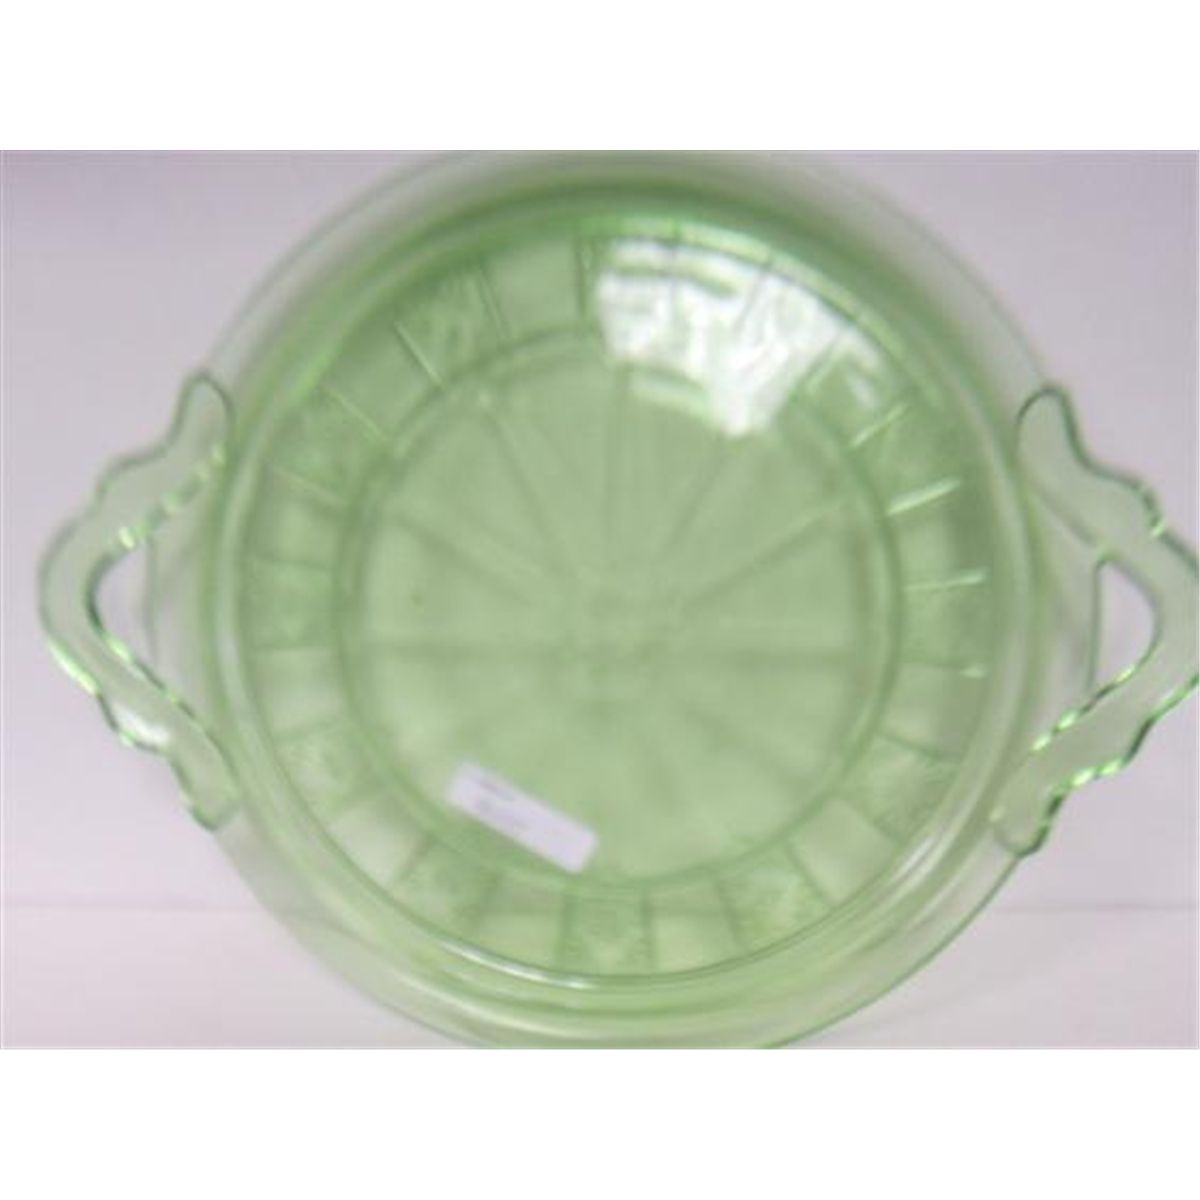 sc 1 st  iCollector.com & Green depression glass- cake plate